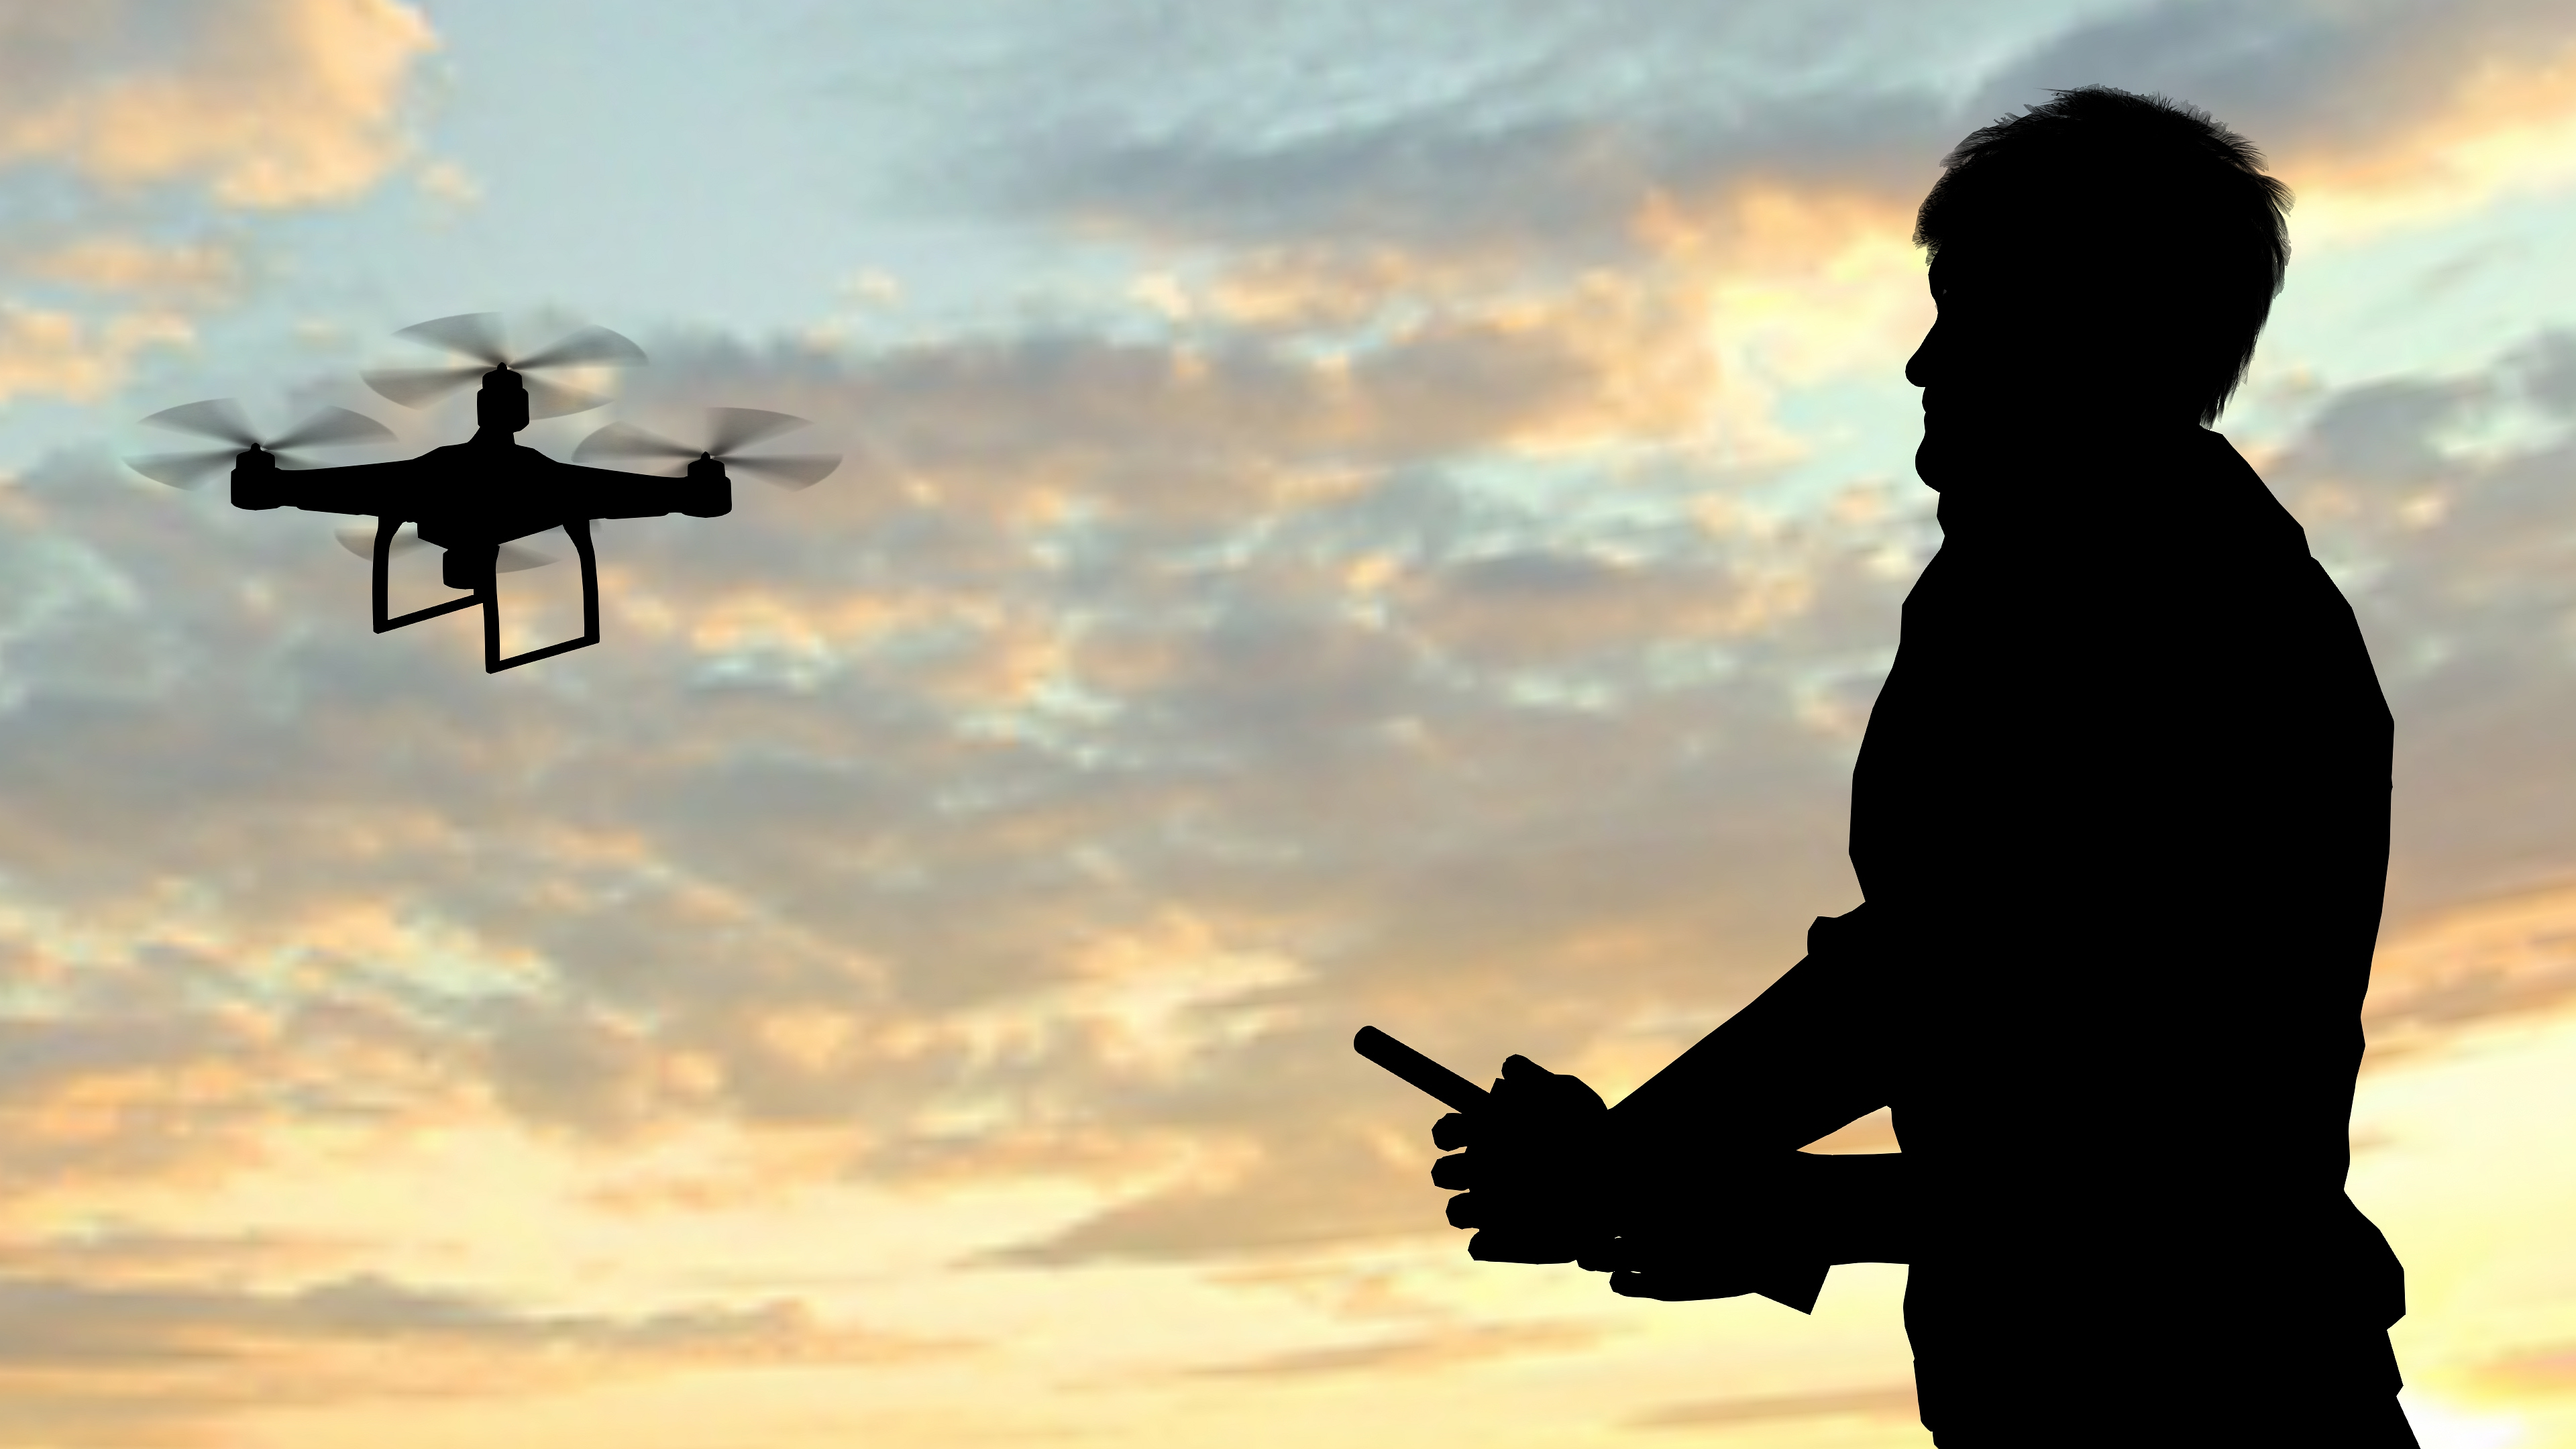 man operating of flying drone quadrocopter at sunset (Bestgreenscreen/Getty Images)